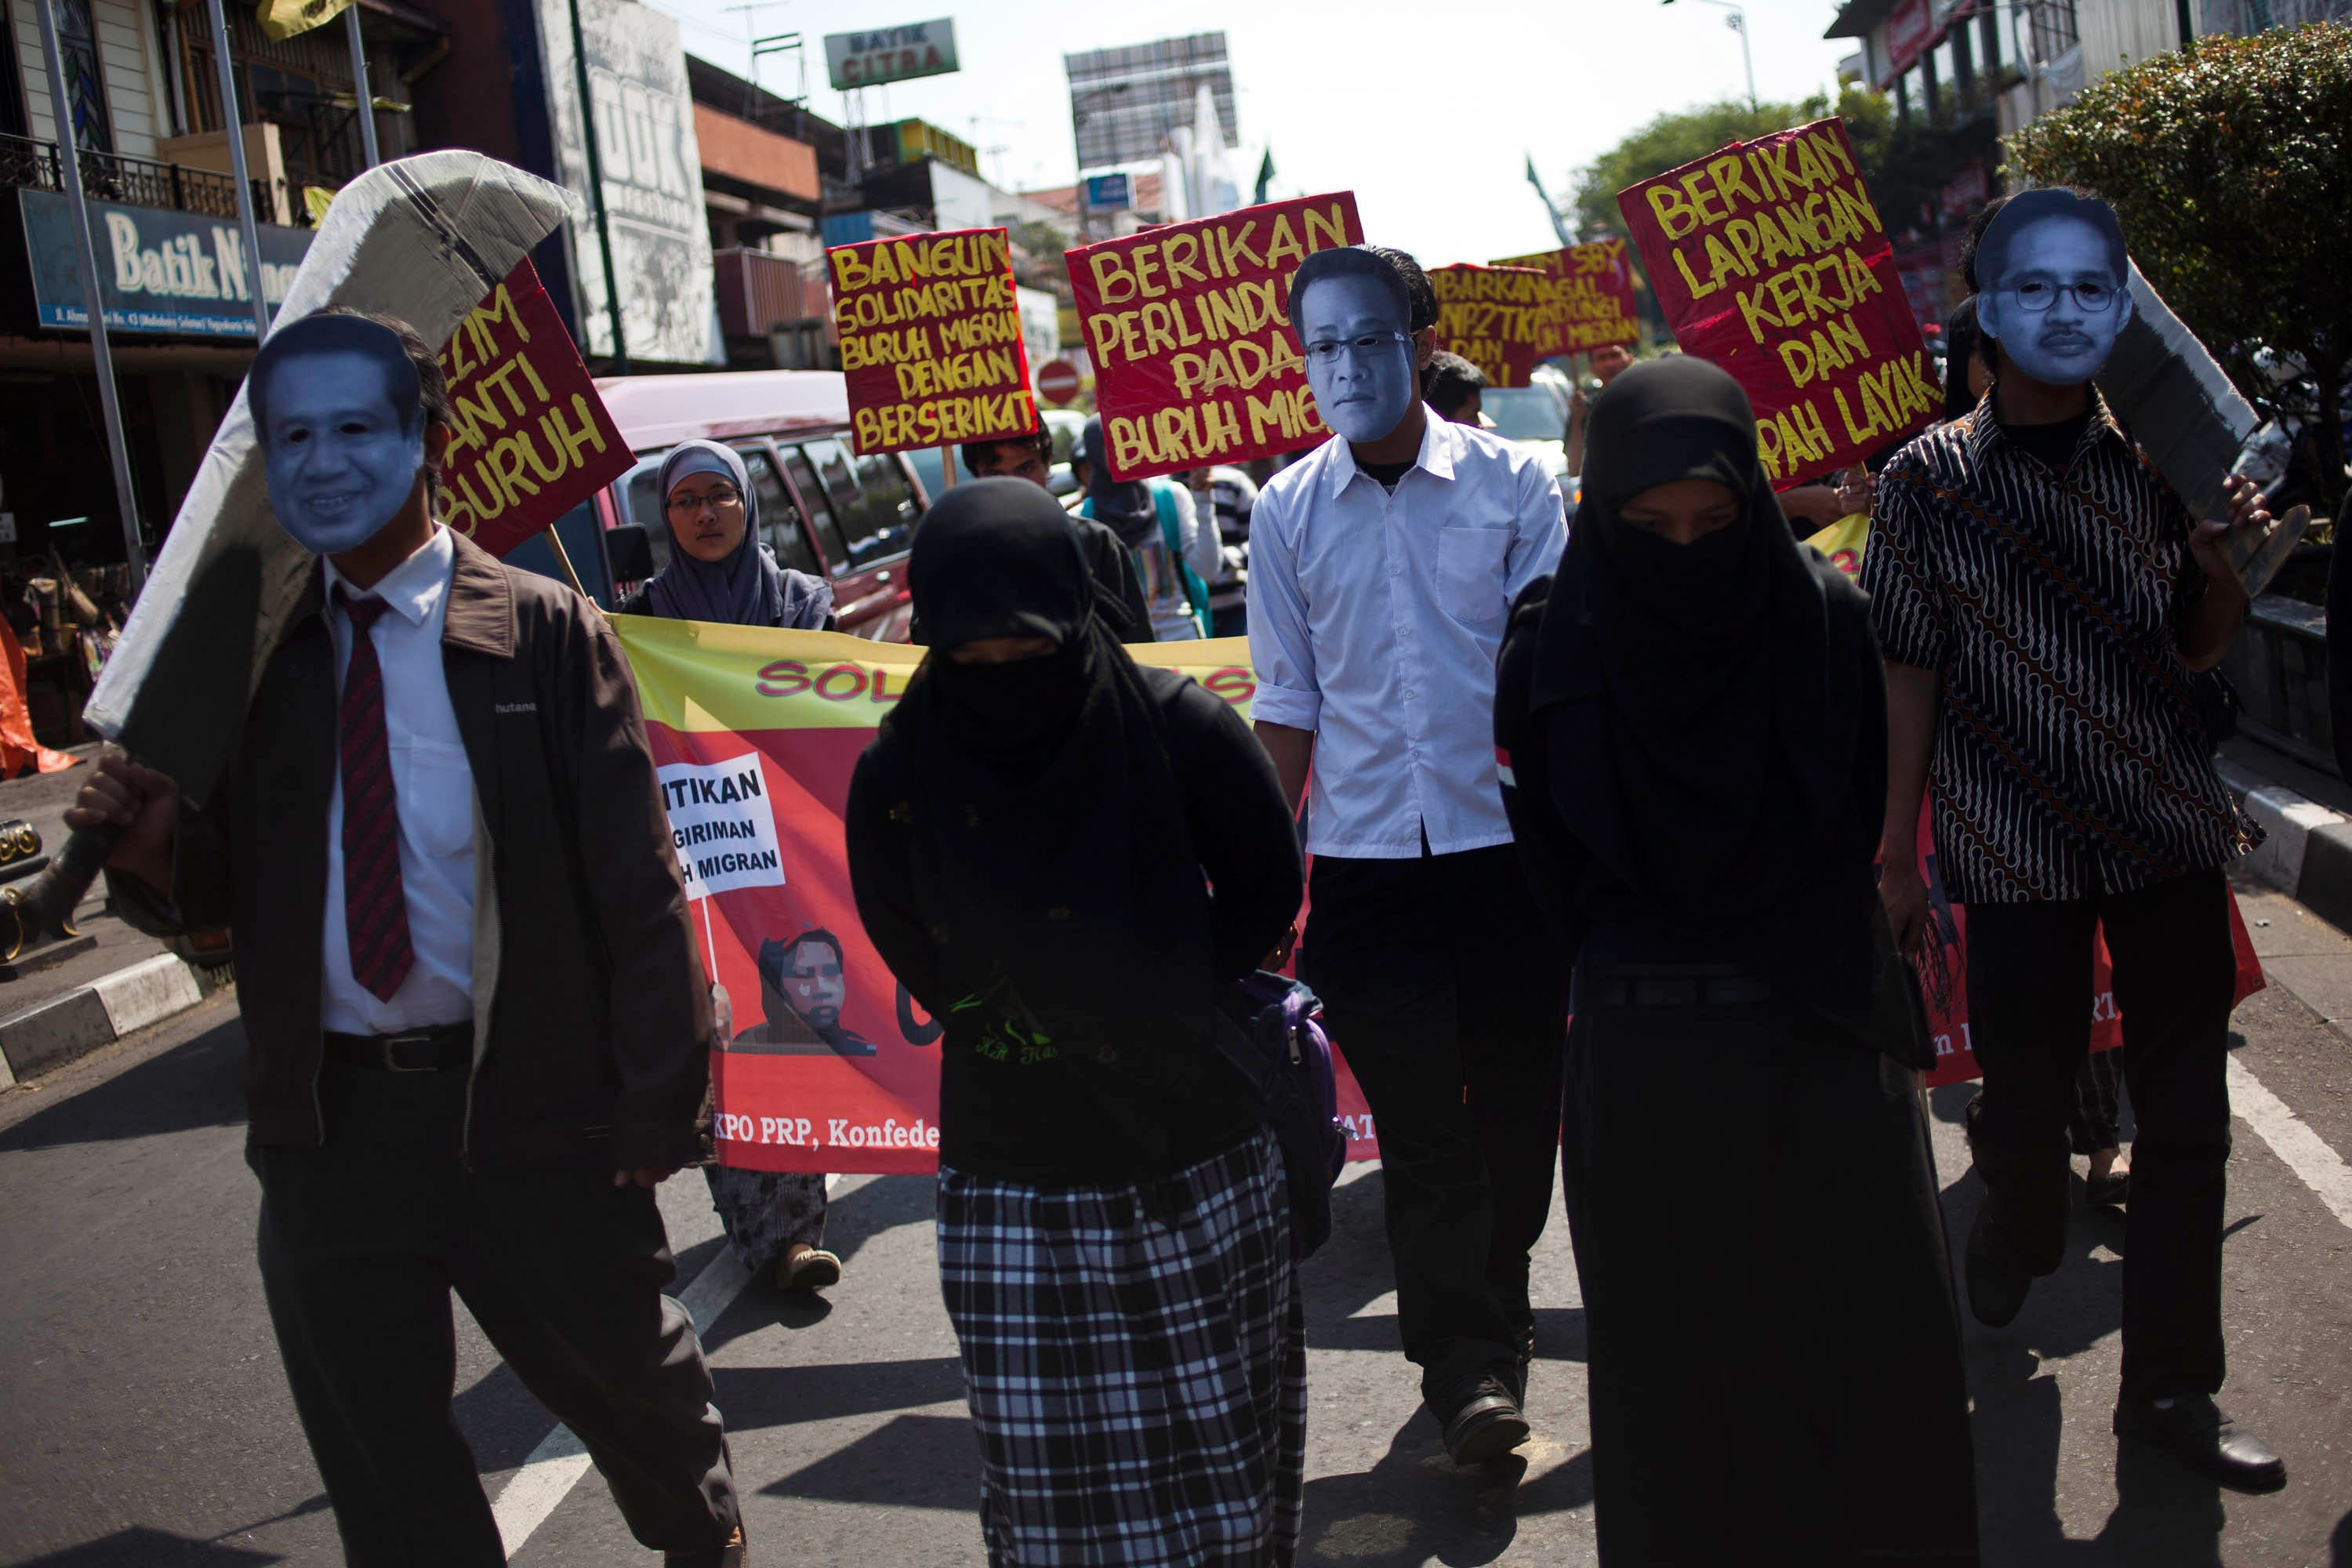 Indonesia is really stepping up its campaign to save its nationals in the Gulf from the fate of execution. Here seen adopting the protest spirit from the Arabs themselves. Last week saw the beheading of a national, with the recalling of the Indonesian Ambassador, but this weeks sees the staying of an execution.